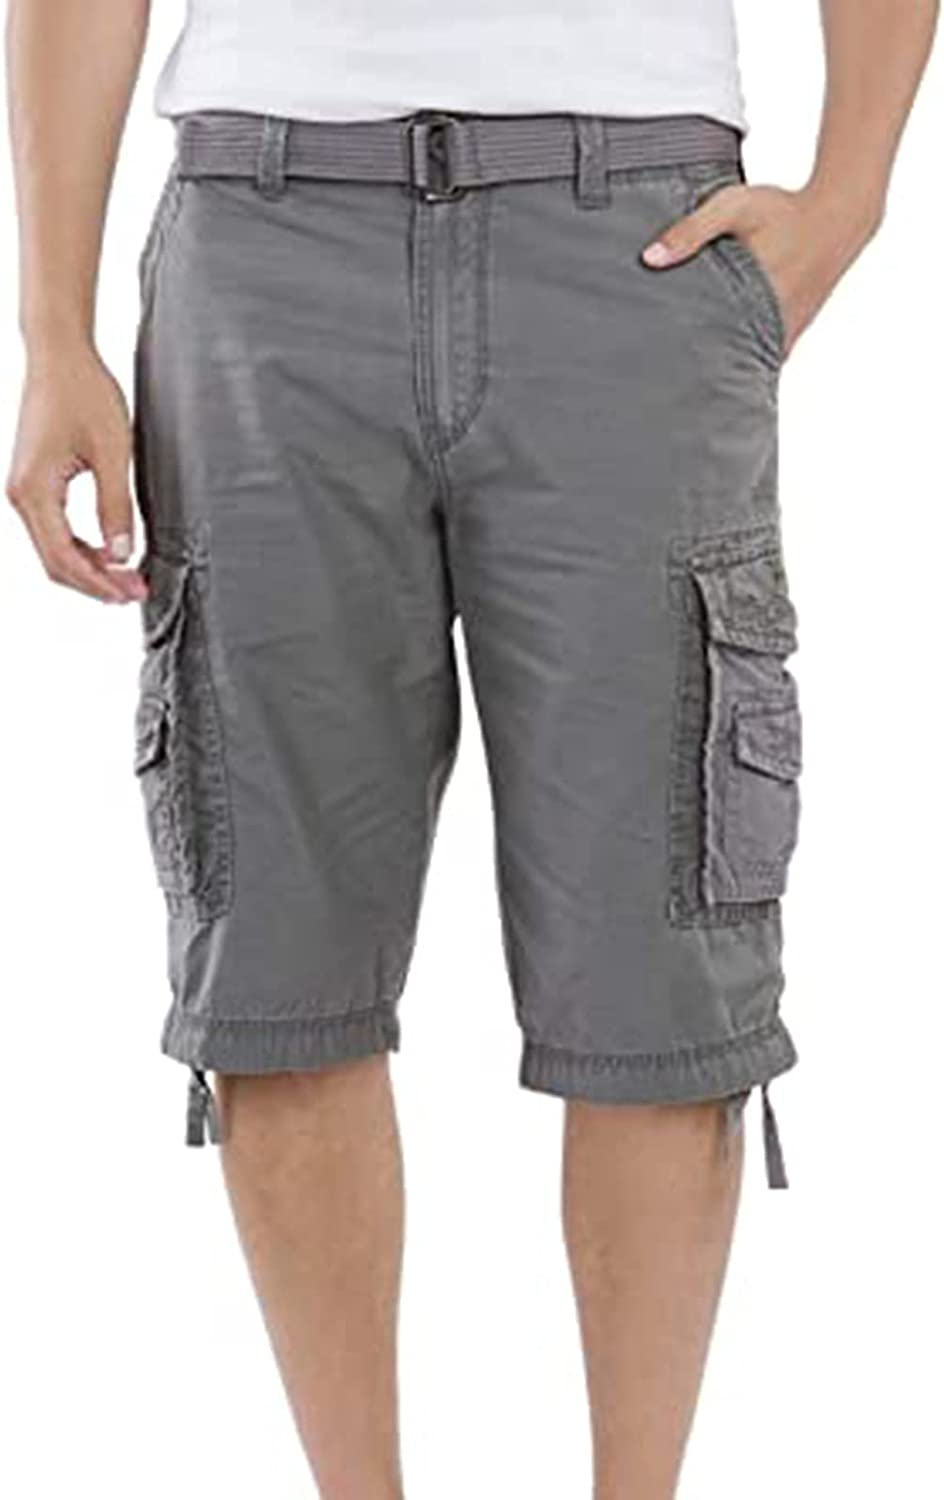 Cargo Shorts for Men Relaxed Fit, Waterproof Tactical Shorts Breathable Hiking Shorts with Pockets Quick Dry Outdoor